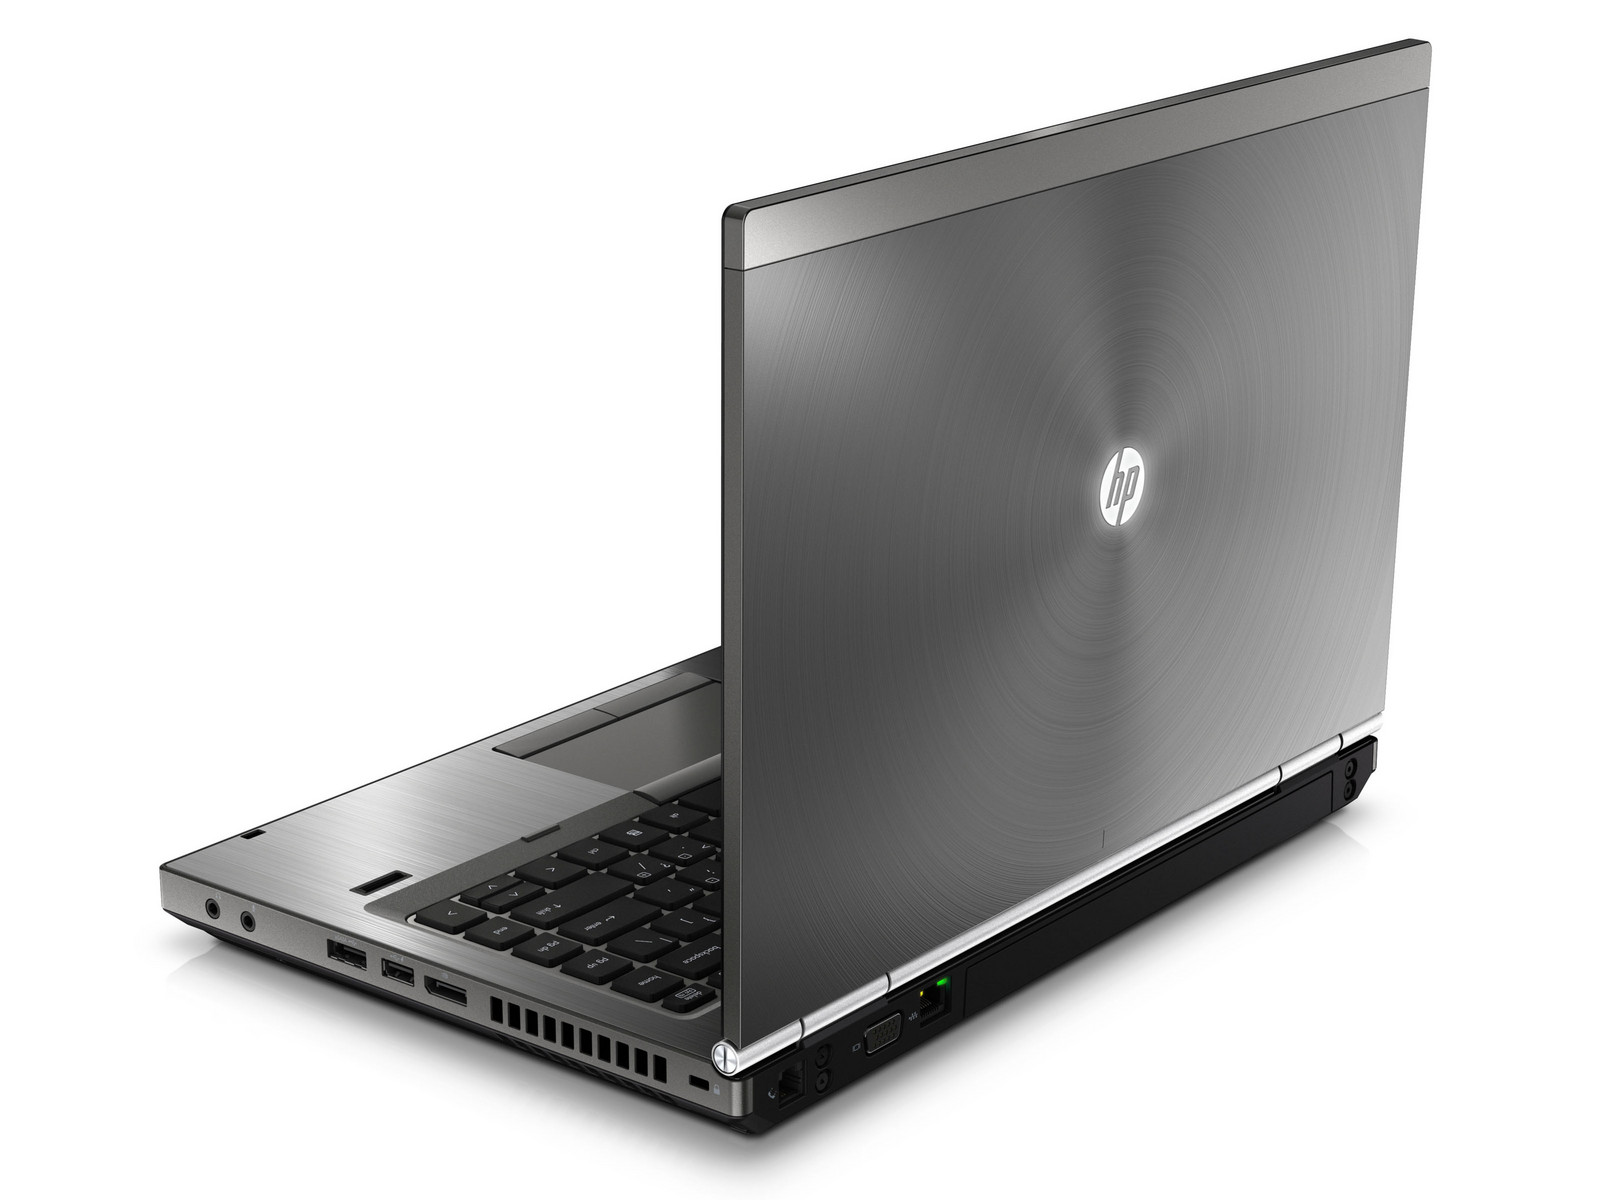 HP EliteBook 8460p Notebook IDT HD Audio Drivers for Windows 10